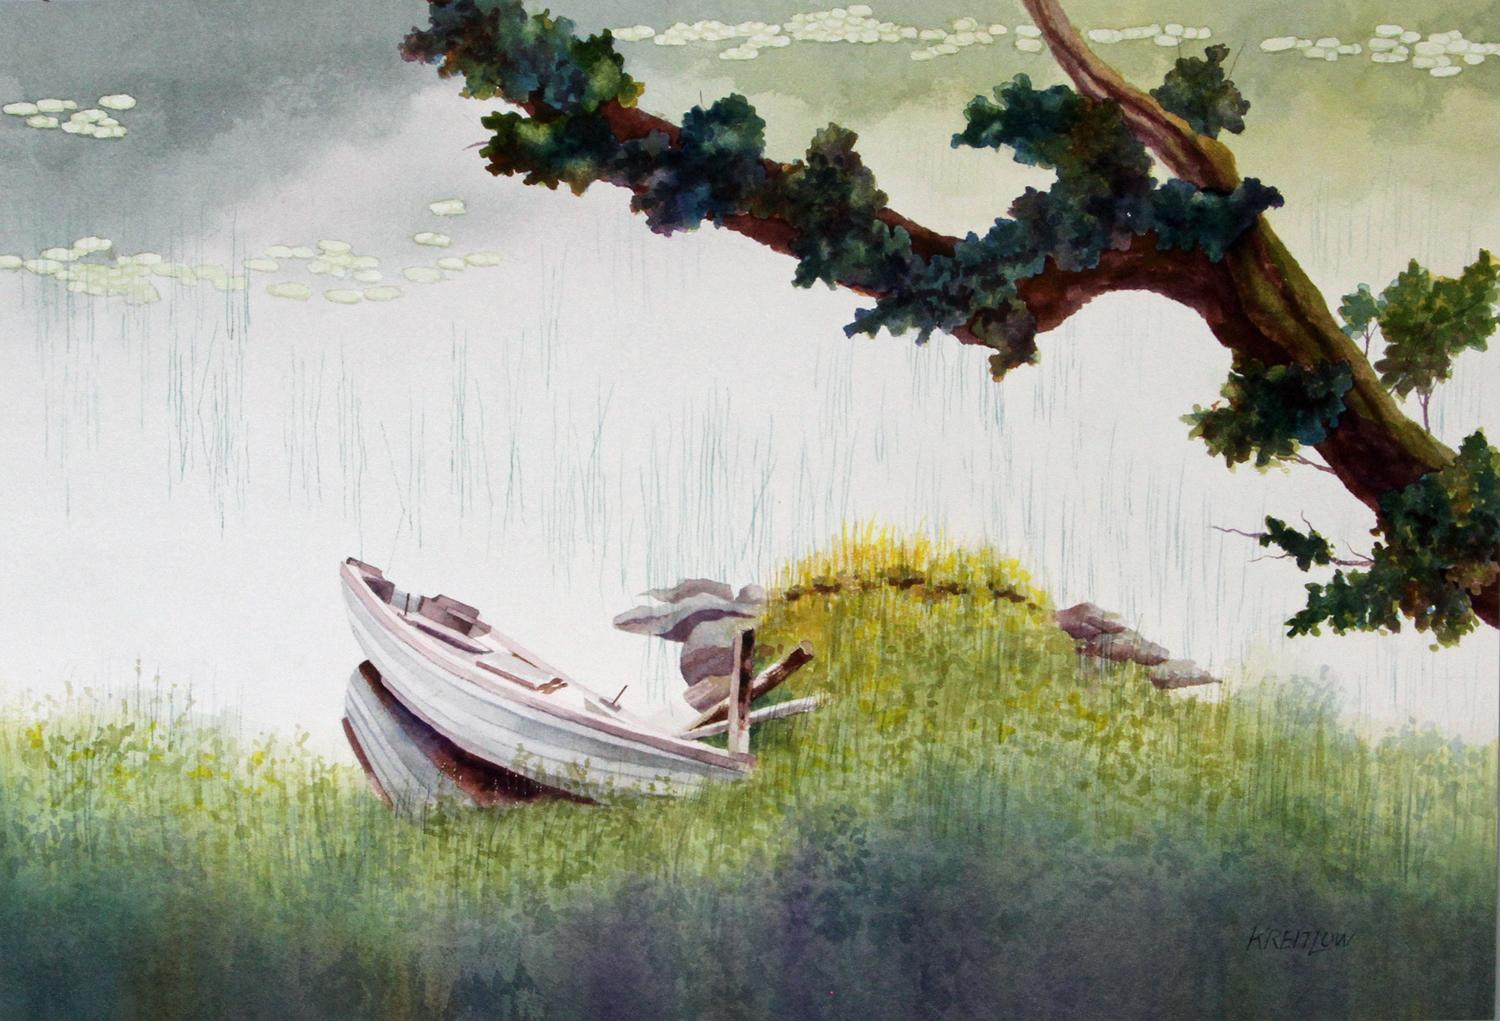 The Branch and the Listing Rowboat, Original Painting